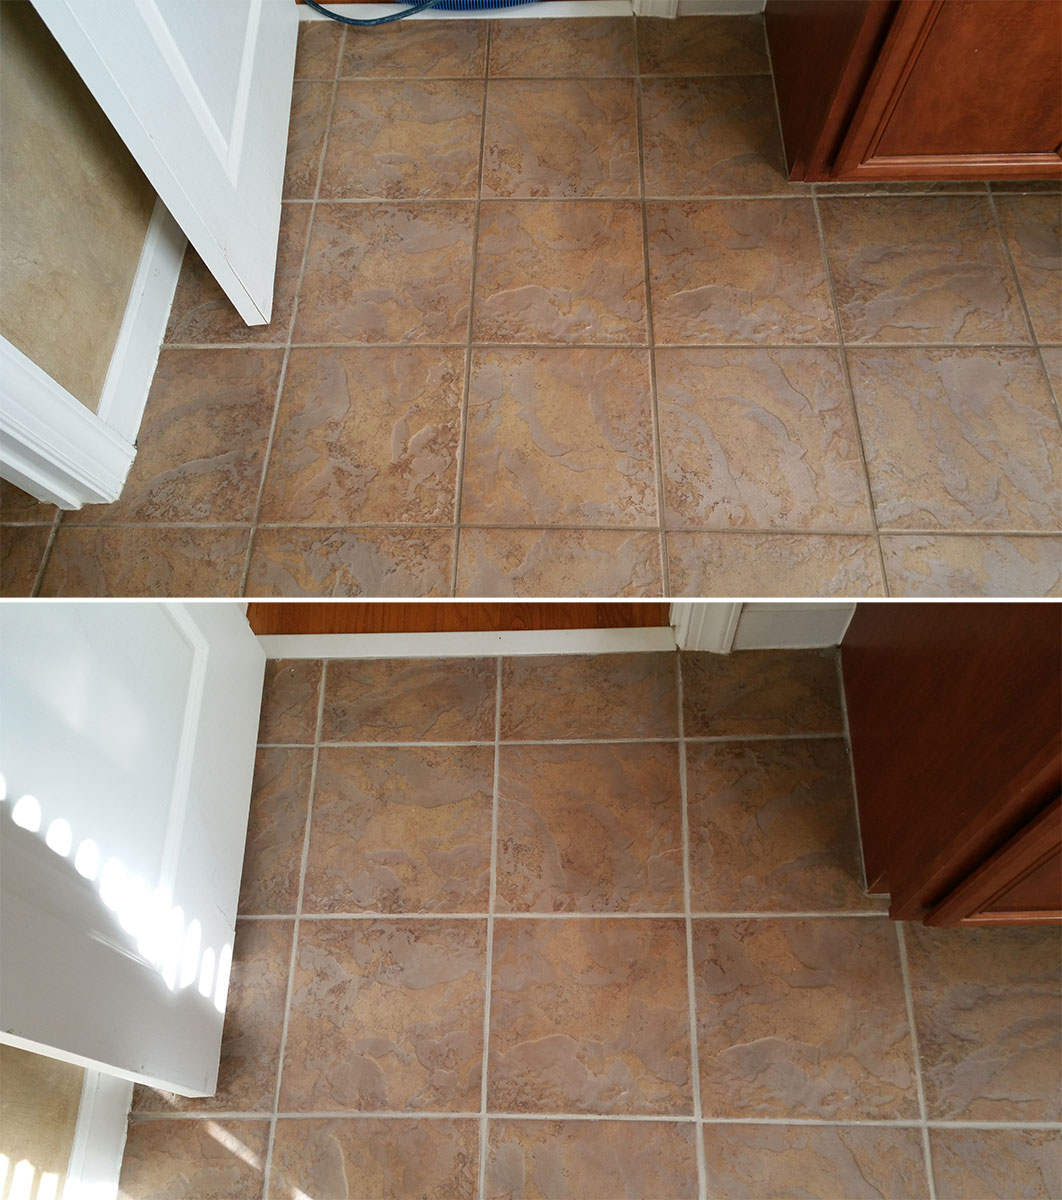 Tile Cleaning Tile Grout